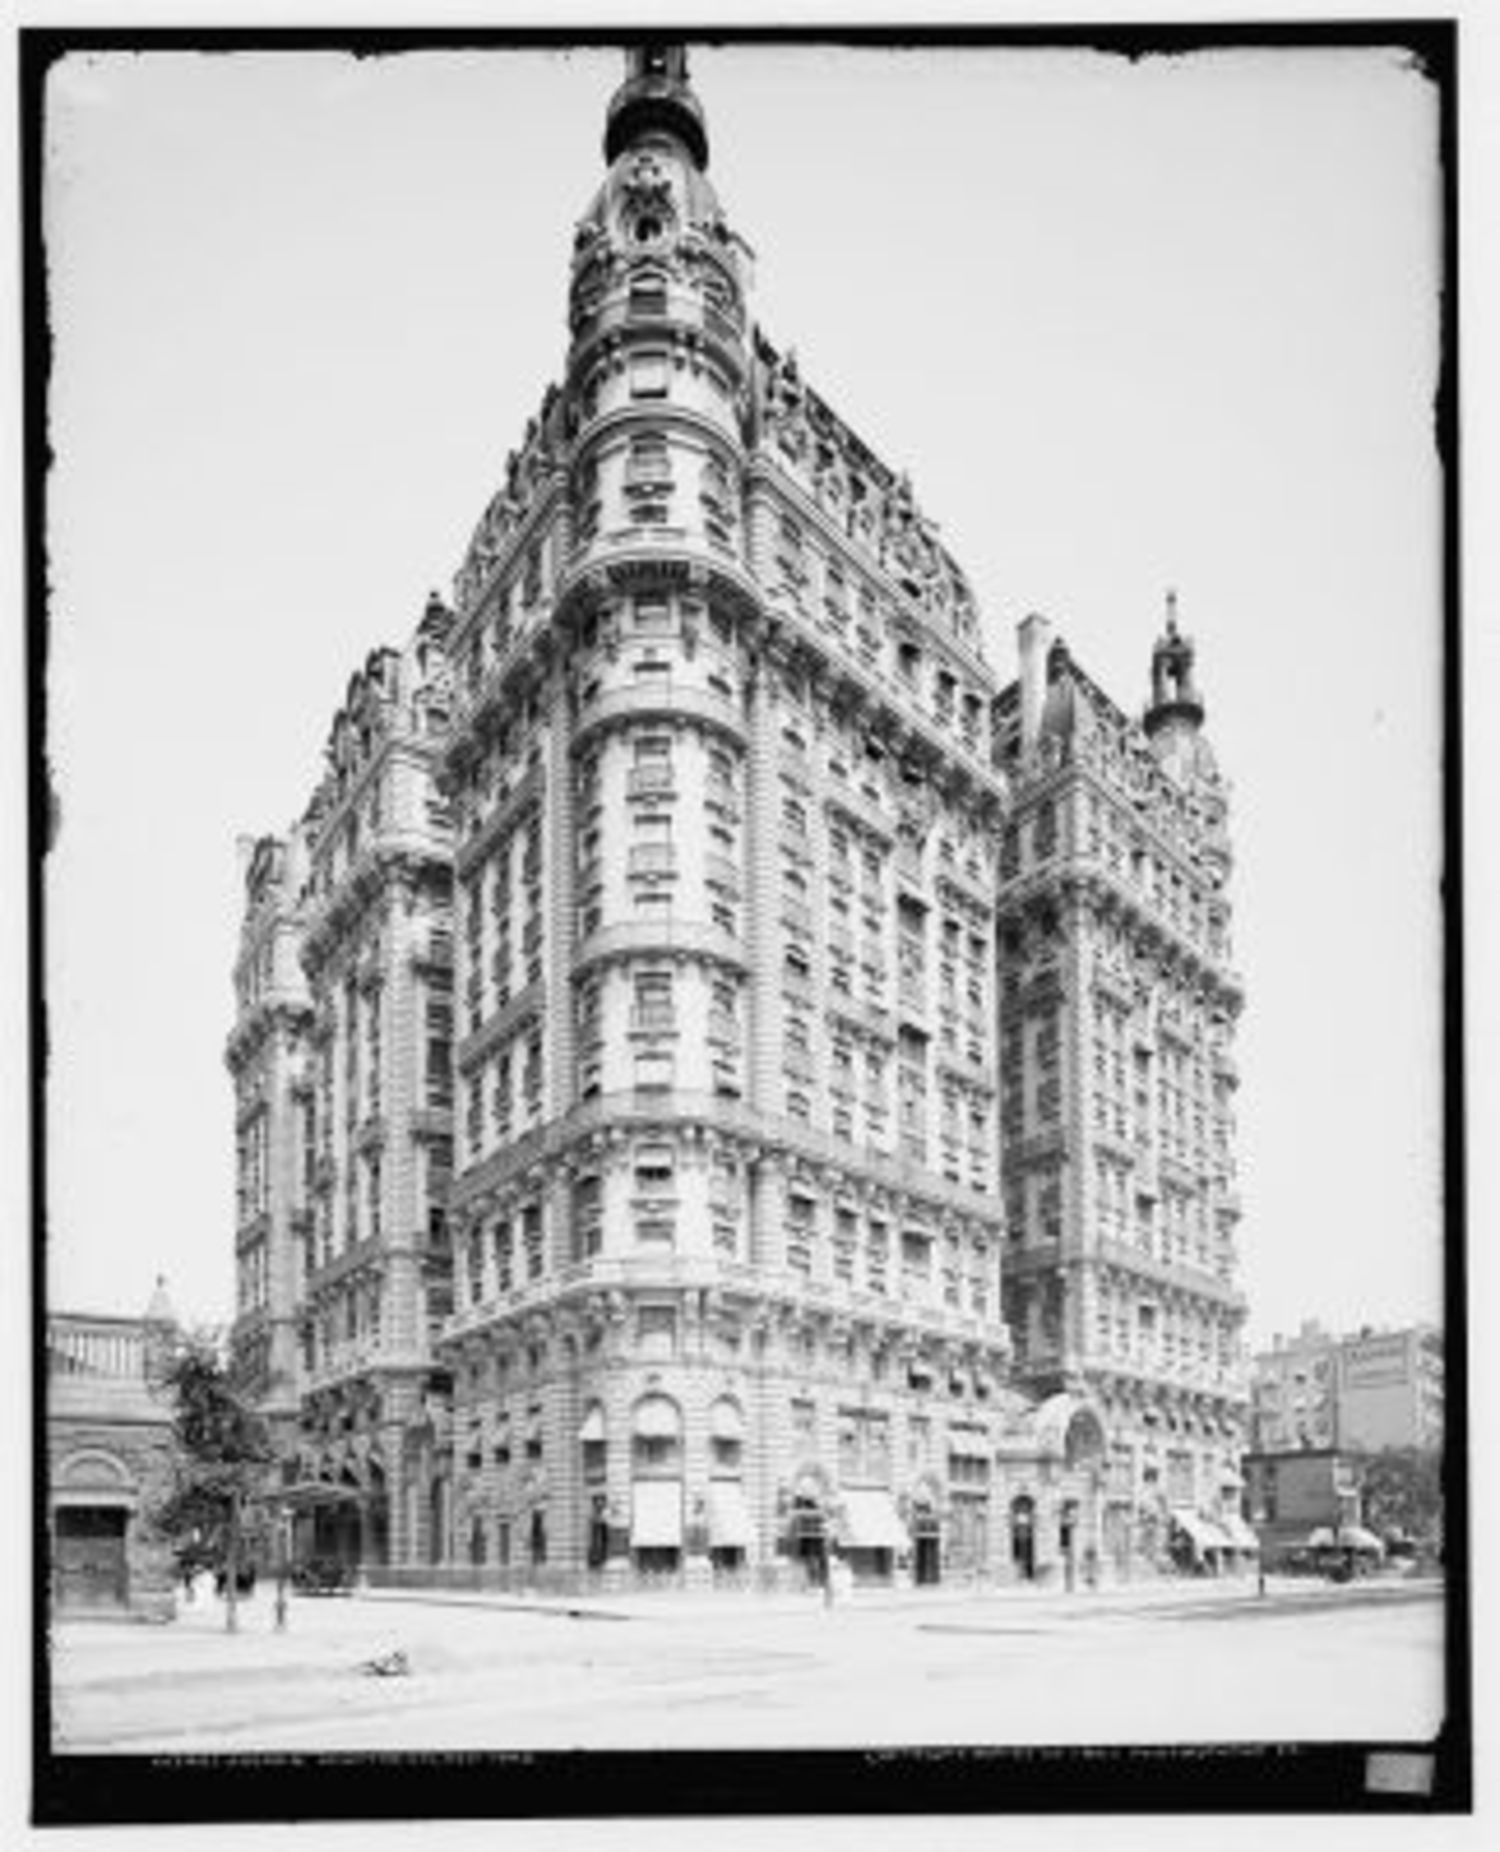 "Ansonia Hotel: The Ansonia Hotel, which opened on Broadway between 73rd and 74th streets in 1904, has been described by the Landmarks Preservation Commission as a ""symbol of an era of opulence and elegance."" Built to serve as an apartment hotel, the building had over 300 suites and over 1,200 rooms; pneumatic tubes delivered messages throughout the 550,000 square feet of space. At one point, the building was home to the world's largest indoor pool. Today the Ansonia offers apartments for rent or sale."